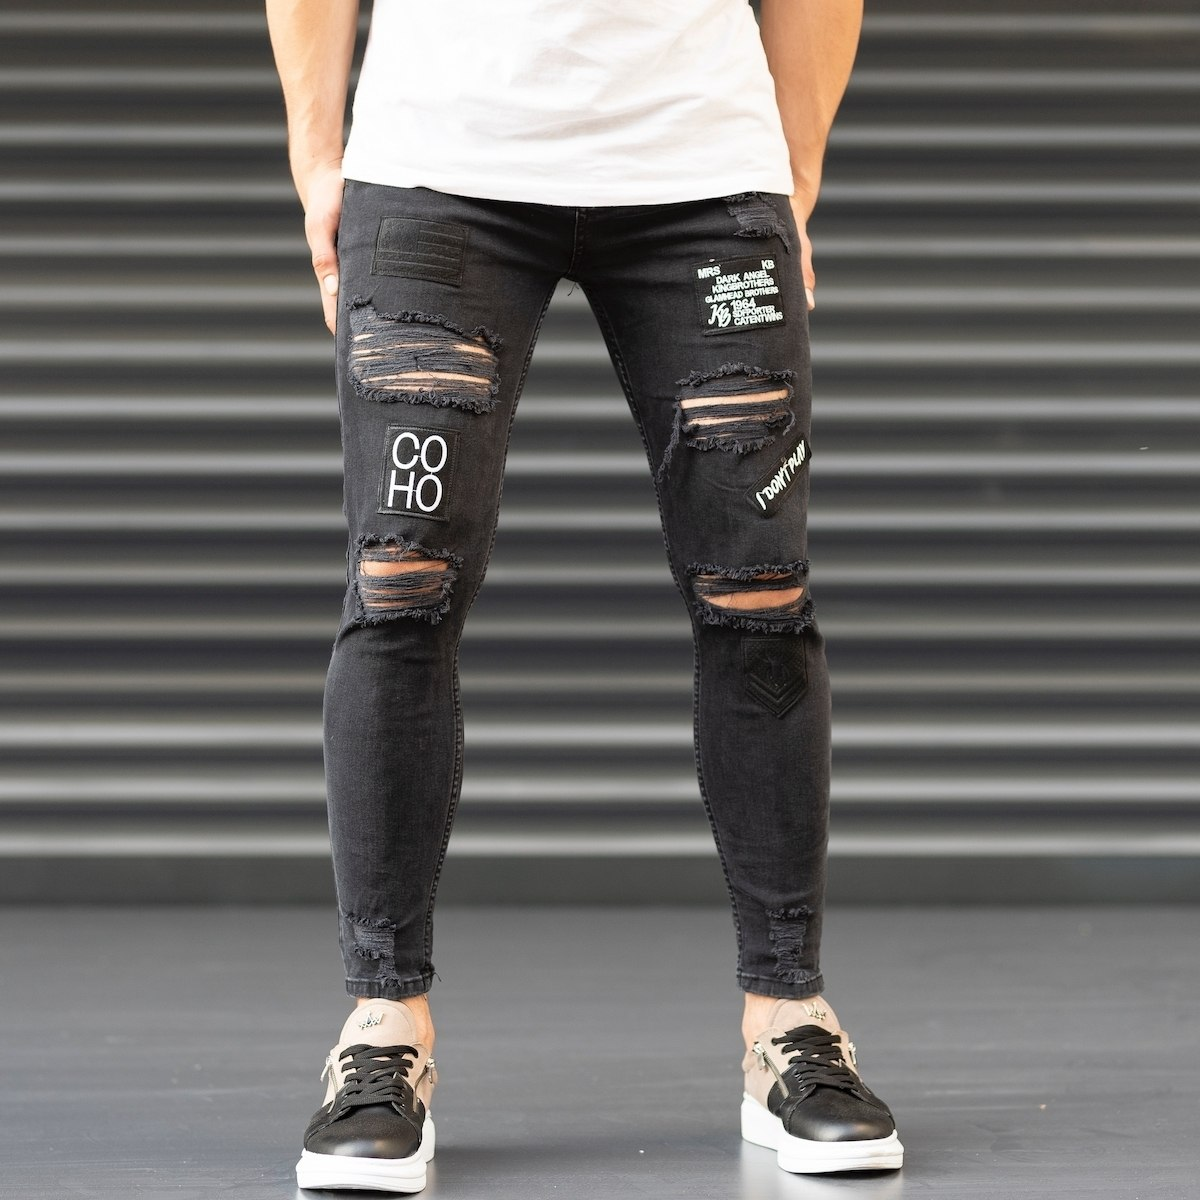 Men's Coho Patchwork Jeans With Heavy Rips In Black Mv Premium Brand - 1